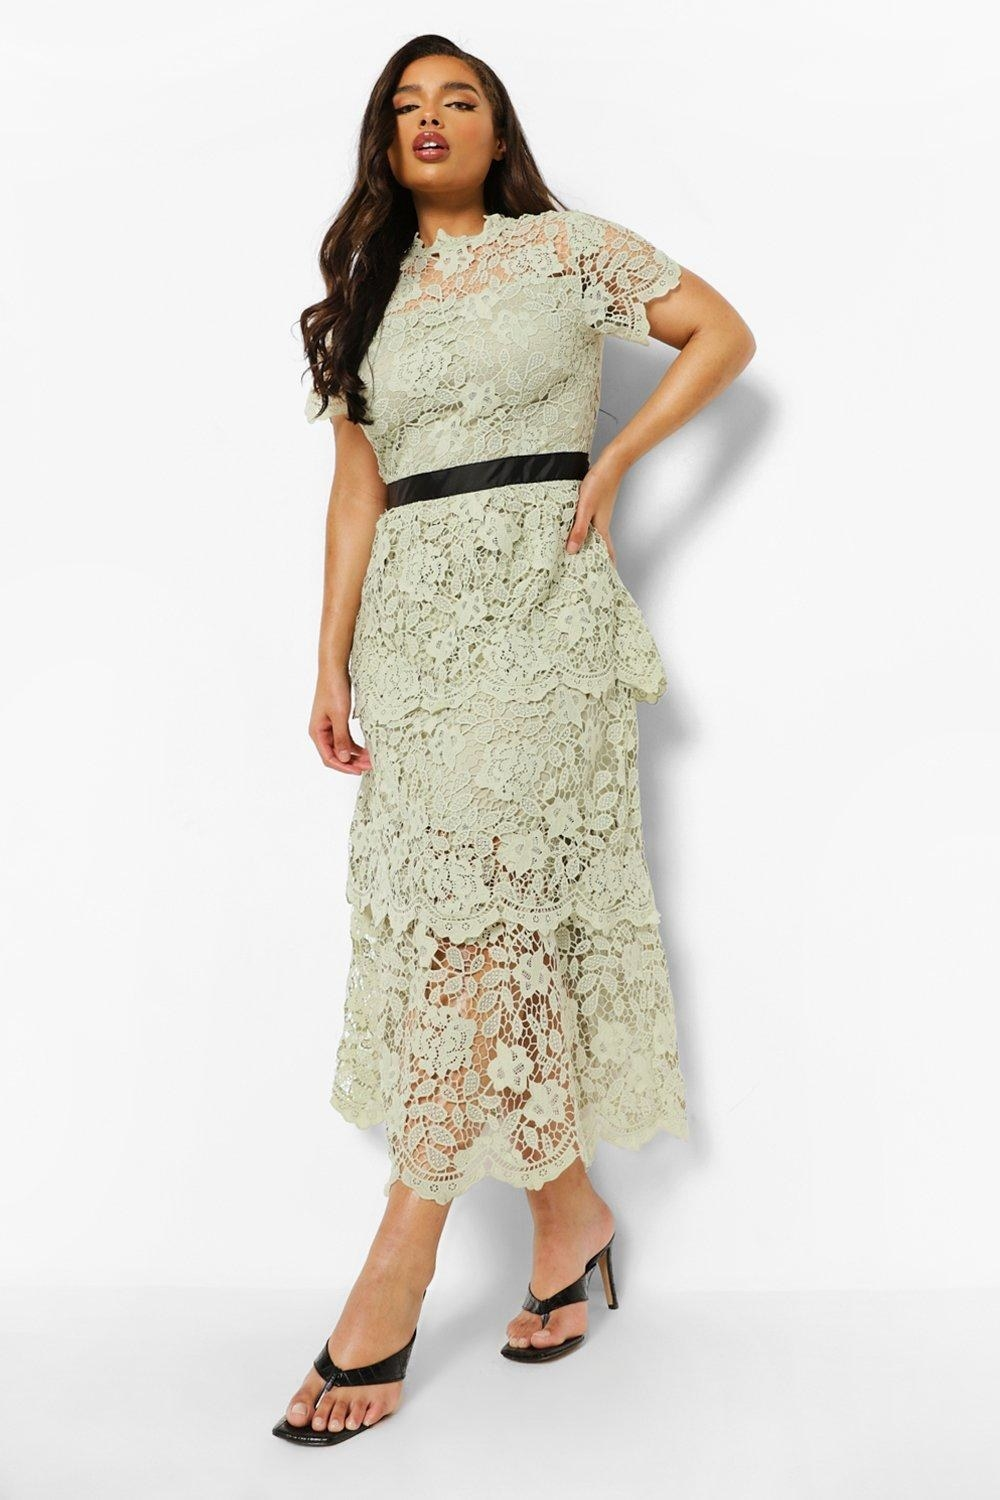 model wearing the ankle-length tiered lace short-sleeved high-neck dress in light green